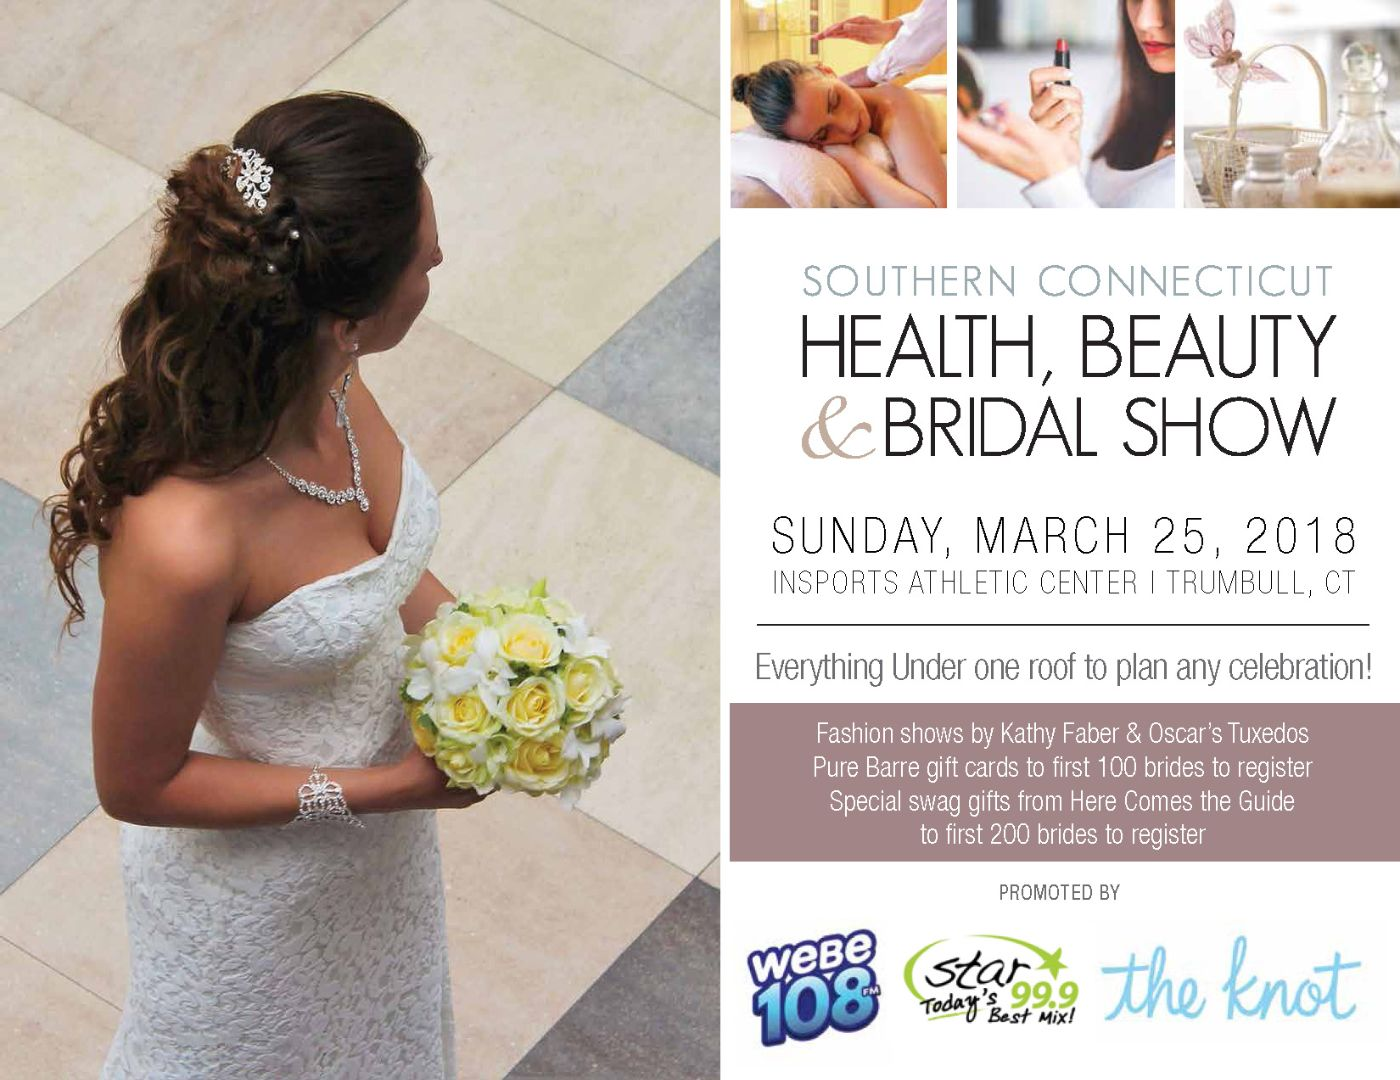 Southern Connecticut Health, Beauty, and Bridal Show